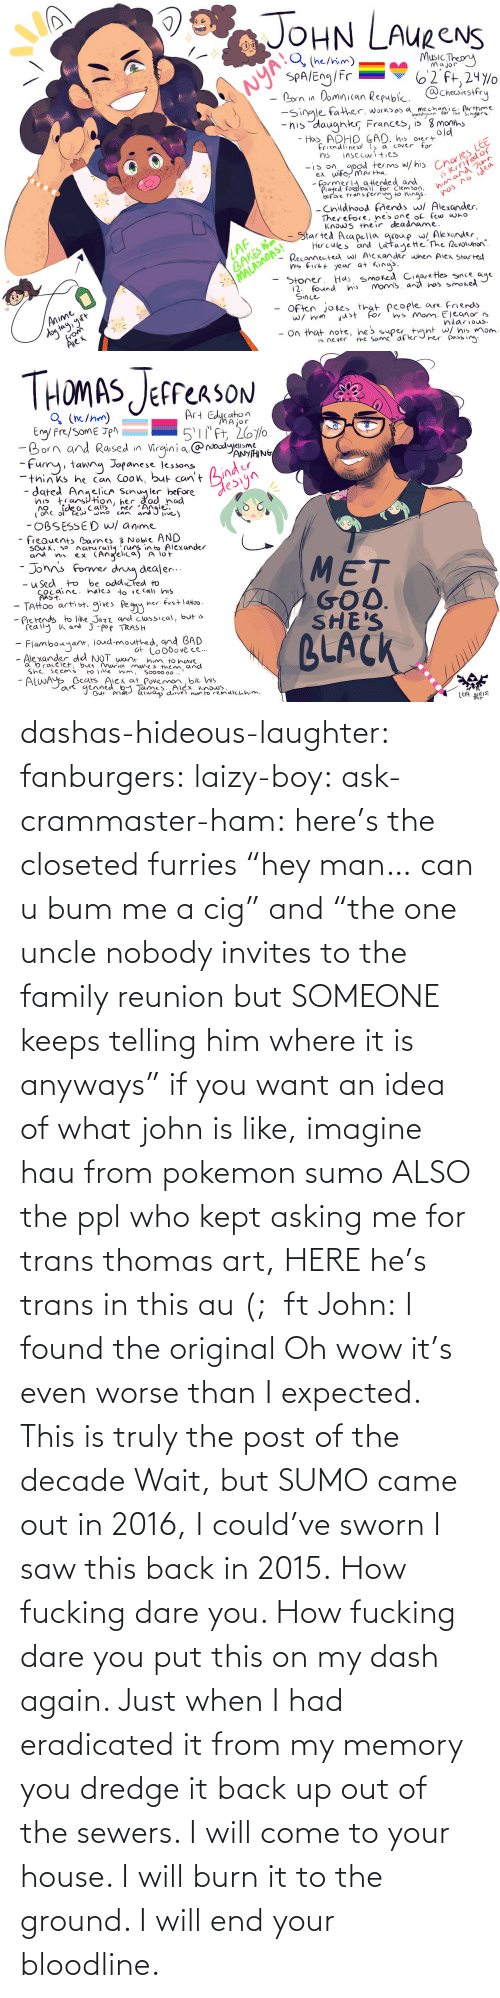 "Image: dashas-hideous-laughter:  fanburgers:   laizy-boy:   ask-crammaster-ham:   here's the closeted furries ""hey man… can u bum me a cig"" and ""the one uncle nobody invites to the family reunion but SOMEONE keeps telling him where it is anyways""   if you want an idea of what john is like, imagine hau from pokemon sumo ALSO the ppl who kept asking me for trans thomas art, HERE he's trans in this au (;  ft John:    I found the original     Oh wow it's even worse than I expected. This is truly the post of the decade    Wait, but SUMO came out in 2016, I could've sworn I saw this back in 2015.    How fucking dare you. How fucking dare you put this on my dash again. Just when I had eradicated it from my memory you dredge it back up out of the sewers. I will come to your house. I will burn it to the ground. I will end your bloodline."